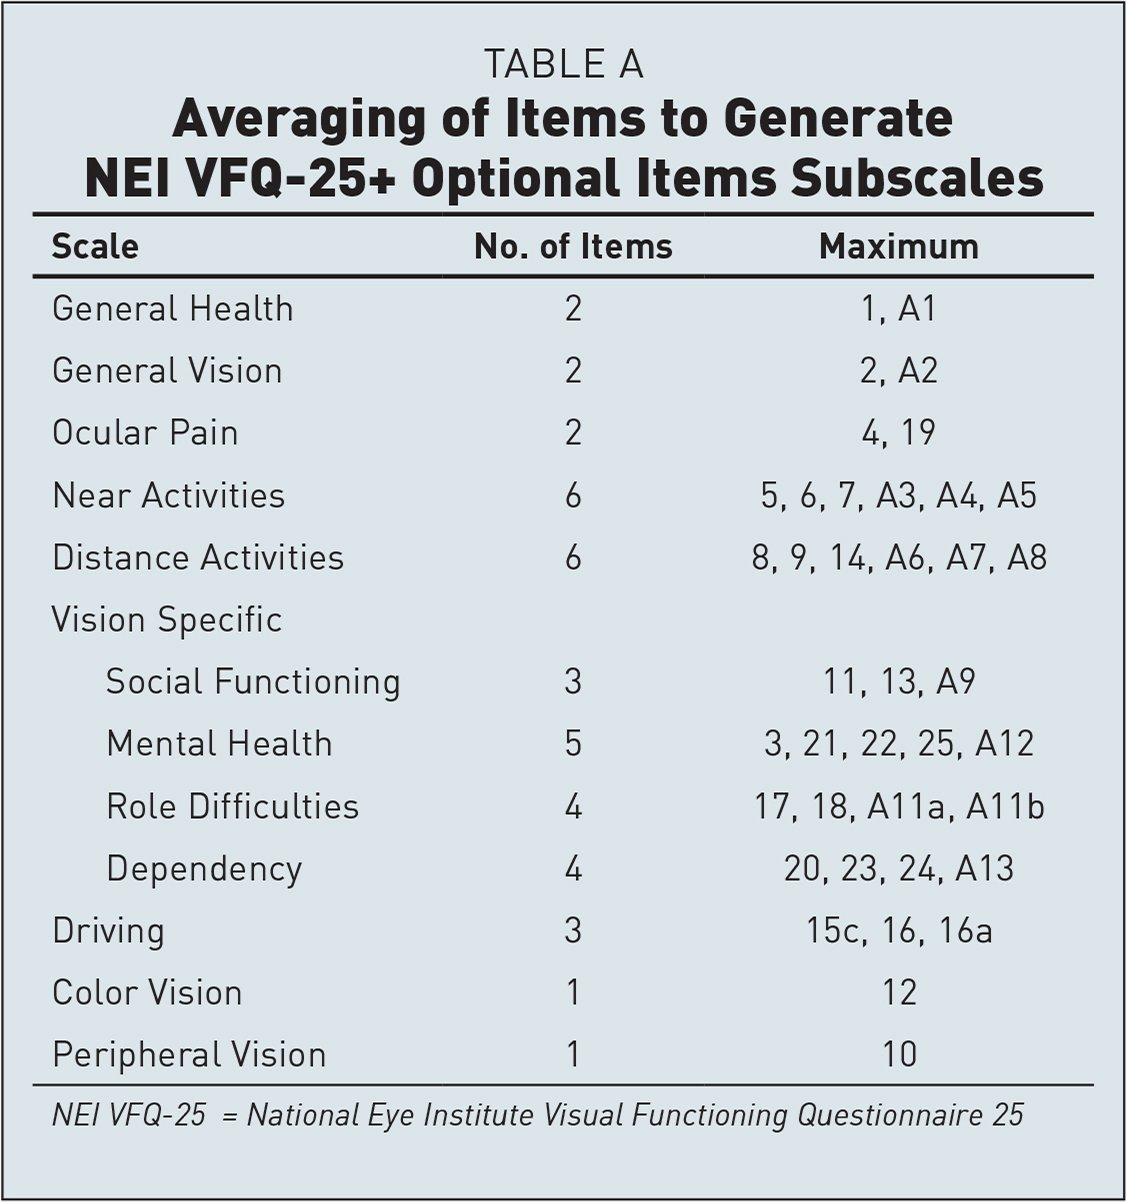 Averaging of Items to Generate NEI VFQ-25+ Optional Items Subscales